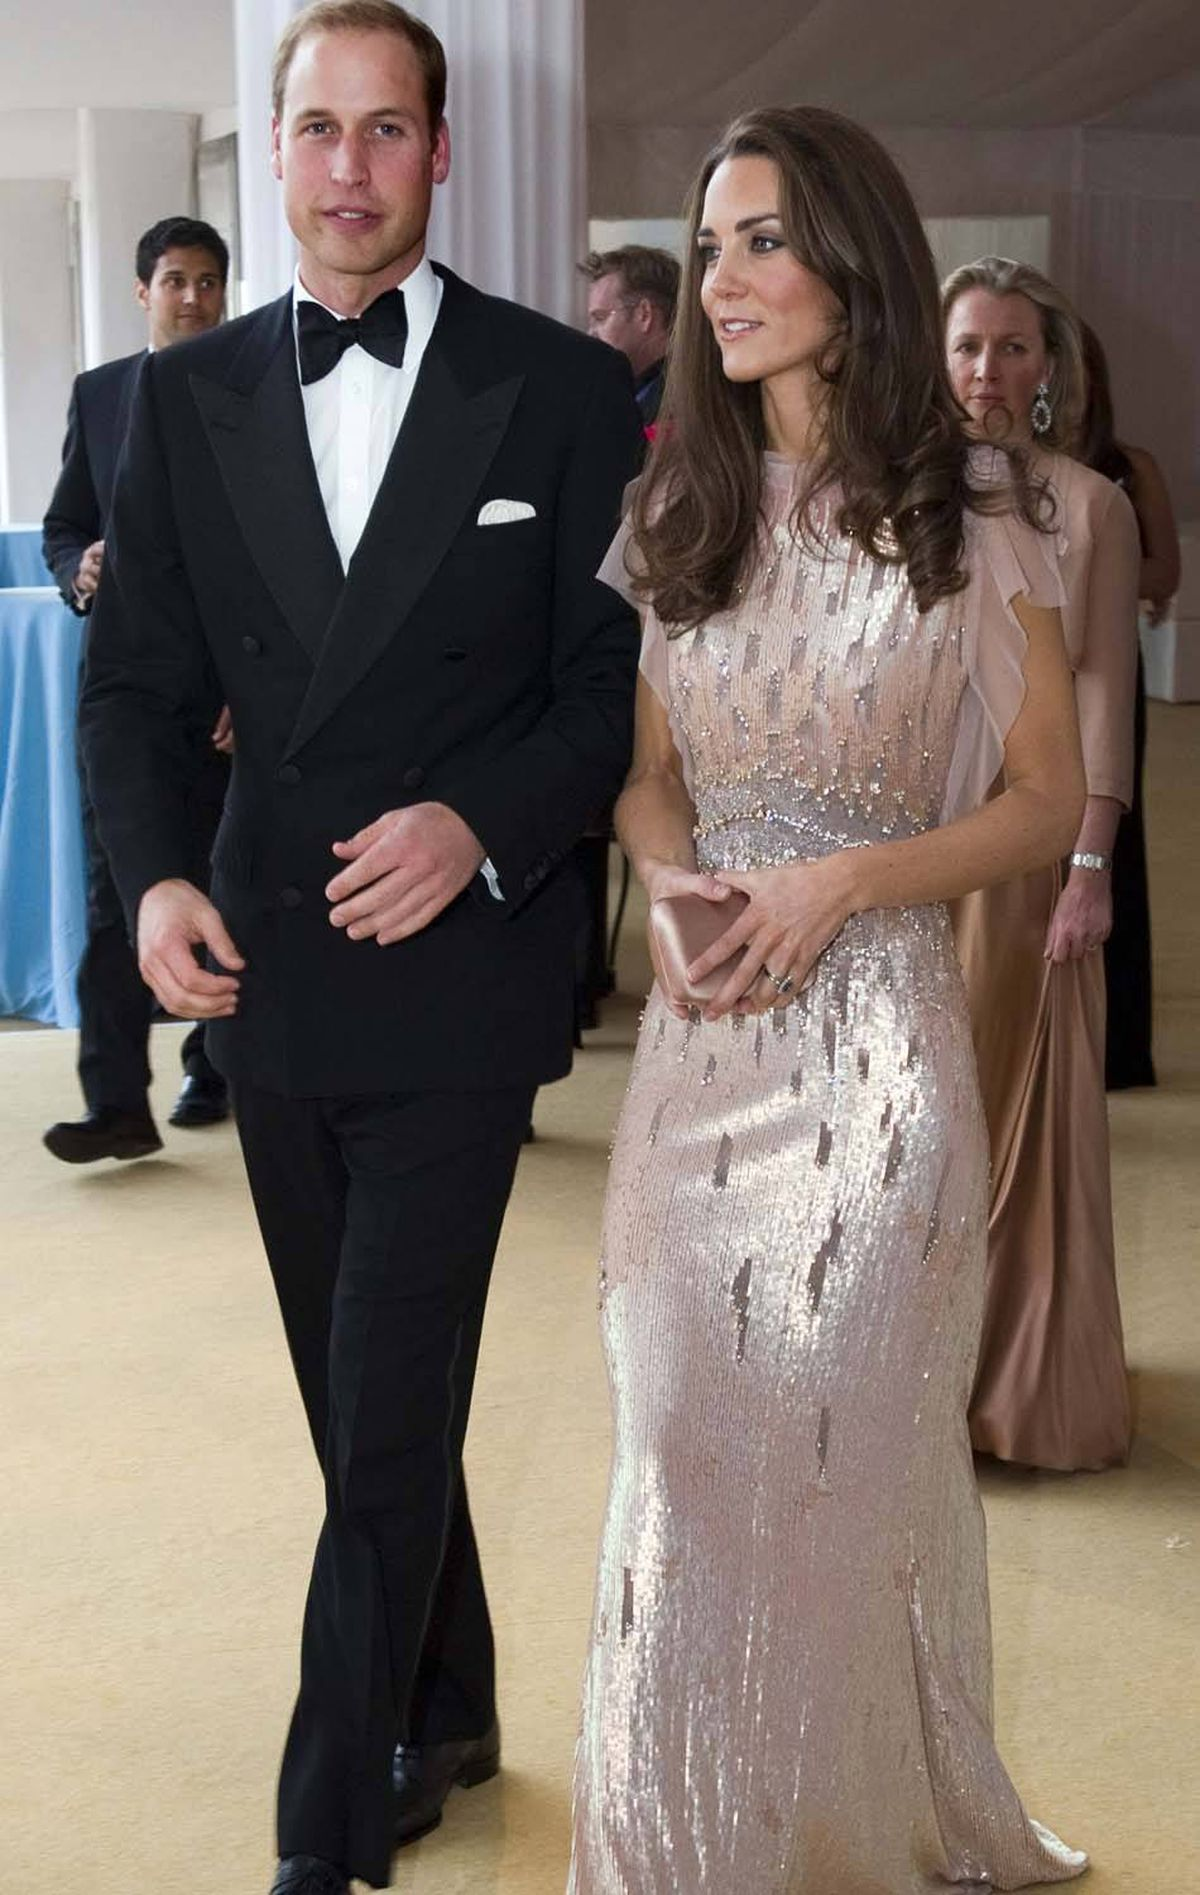 The Duchess dazzles in a sparkling Jenny Packham gown at the the 10th annual ARK gala dinner at Kensington Palace in London on June 9.